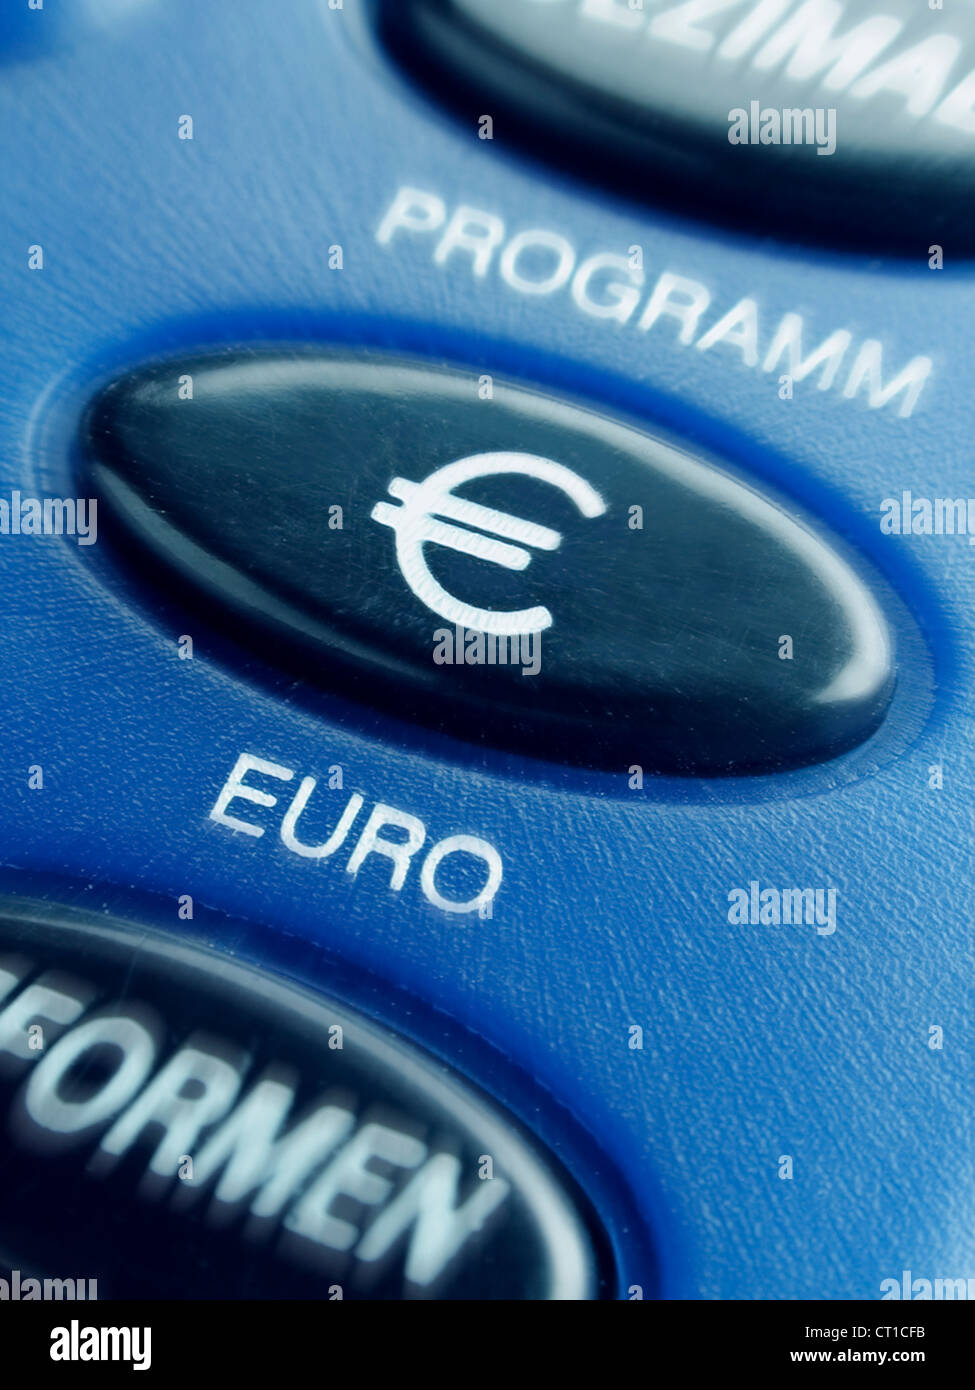 key with Euro sign on a calculator  - Taste mit Eurozeichen € - Stock Image